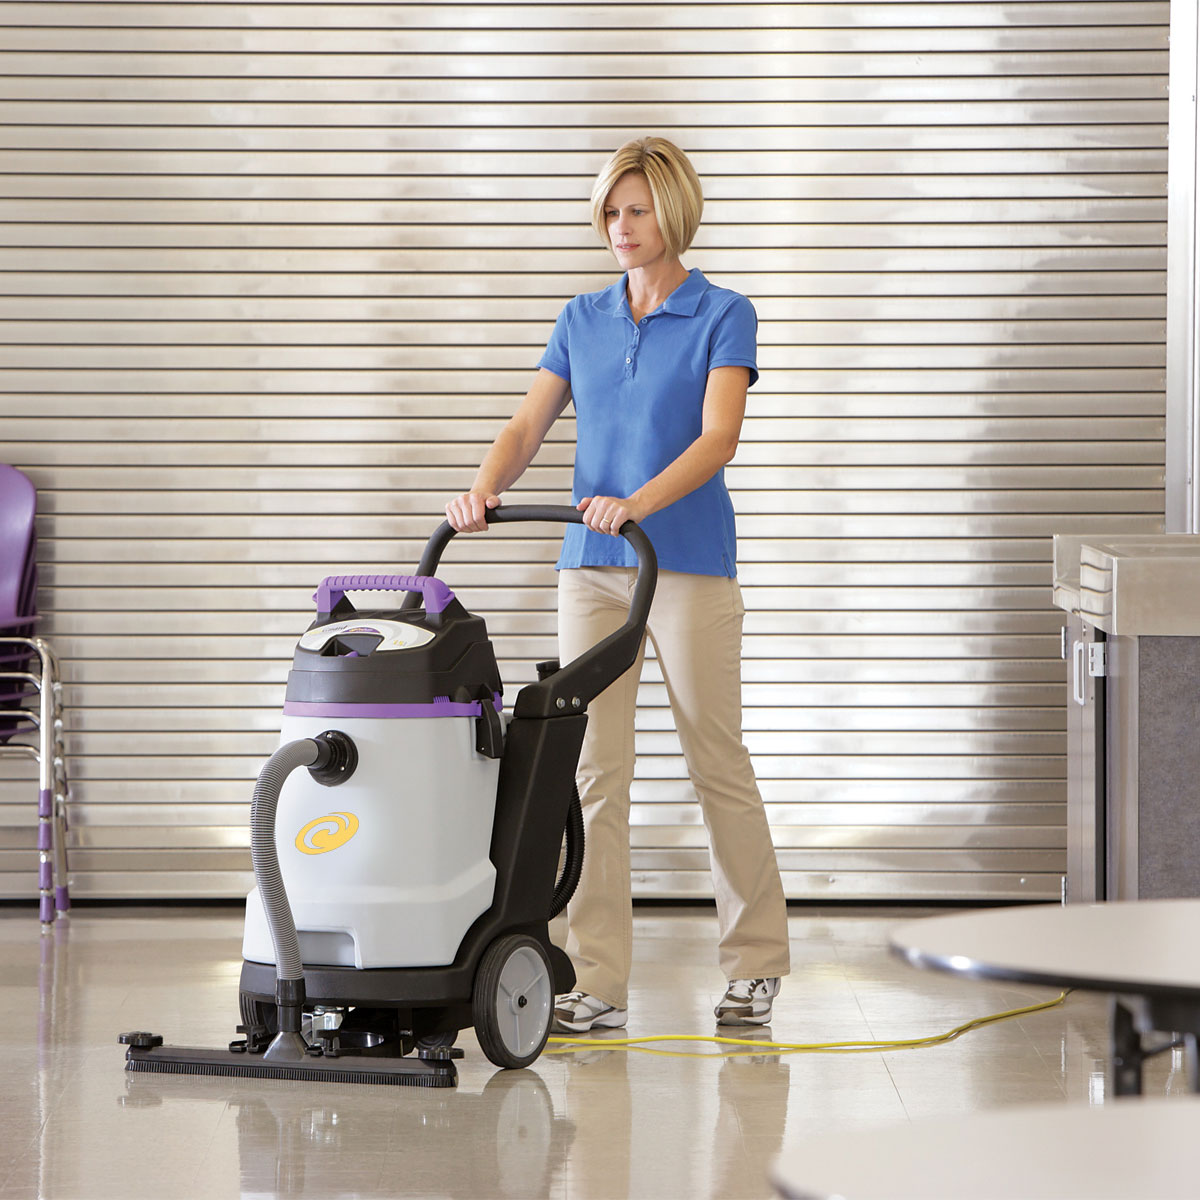 Proteam Proguard 20 Wet Dry Vacuum Cleaner Unoclean